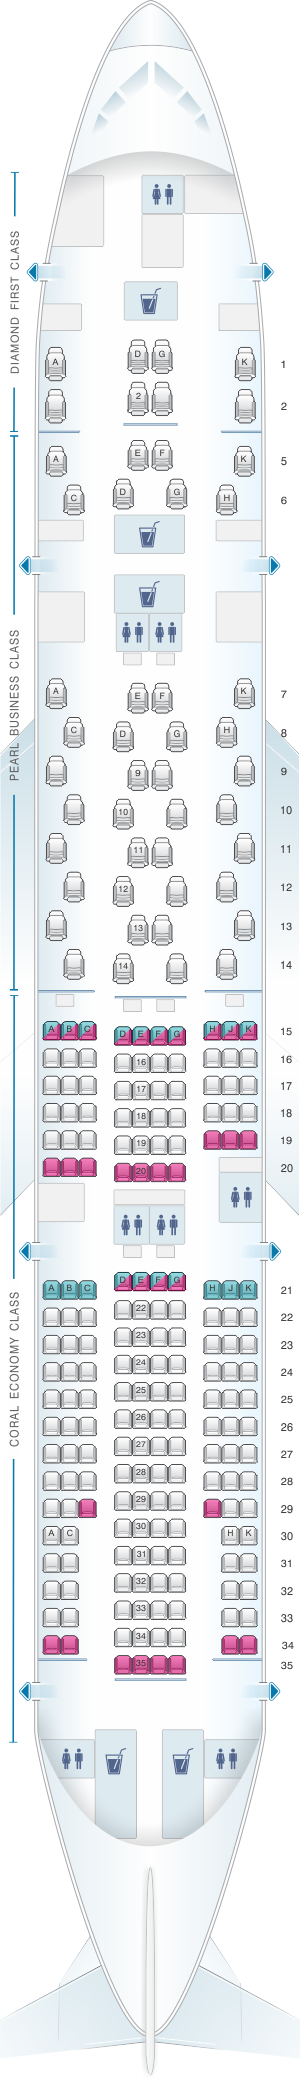 Seat map for Etihad Airways Boeing B777 200LR